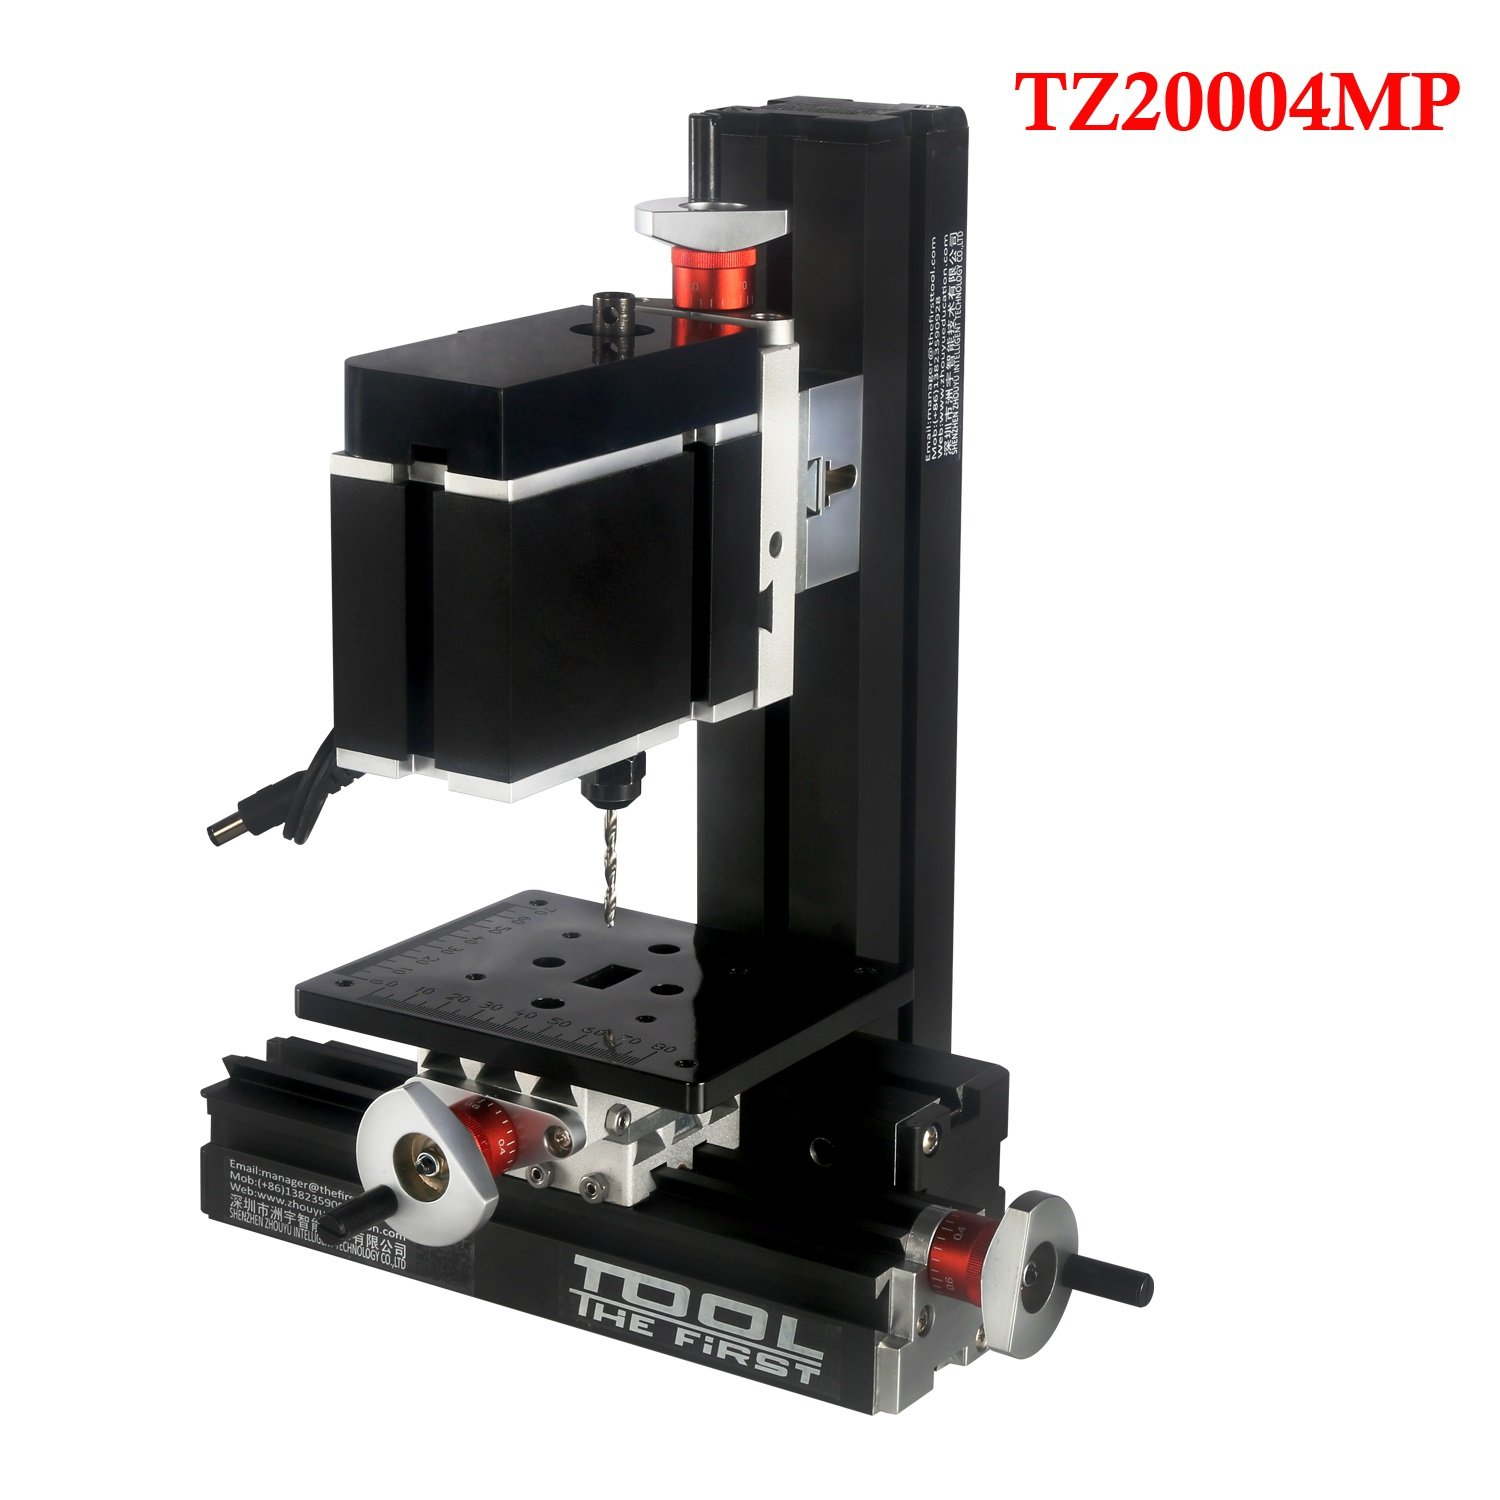 Metal Working Lathe DIY Woodworking Big Power 60W Electroplated Metal Drilling Machine For Hobby Model Wood Working